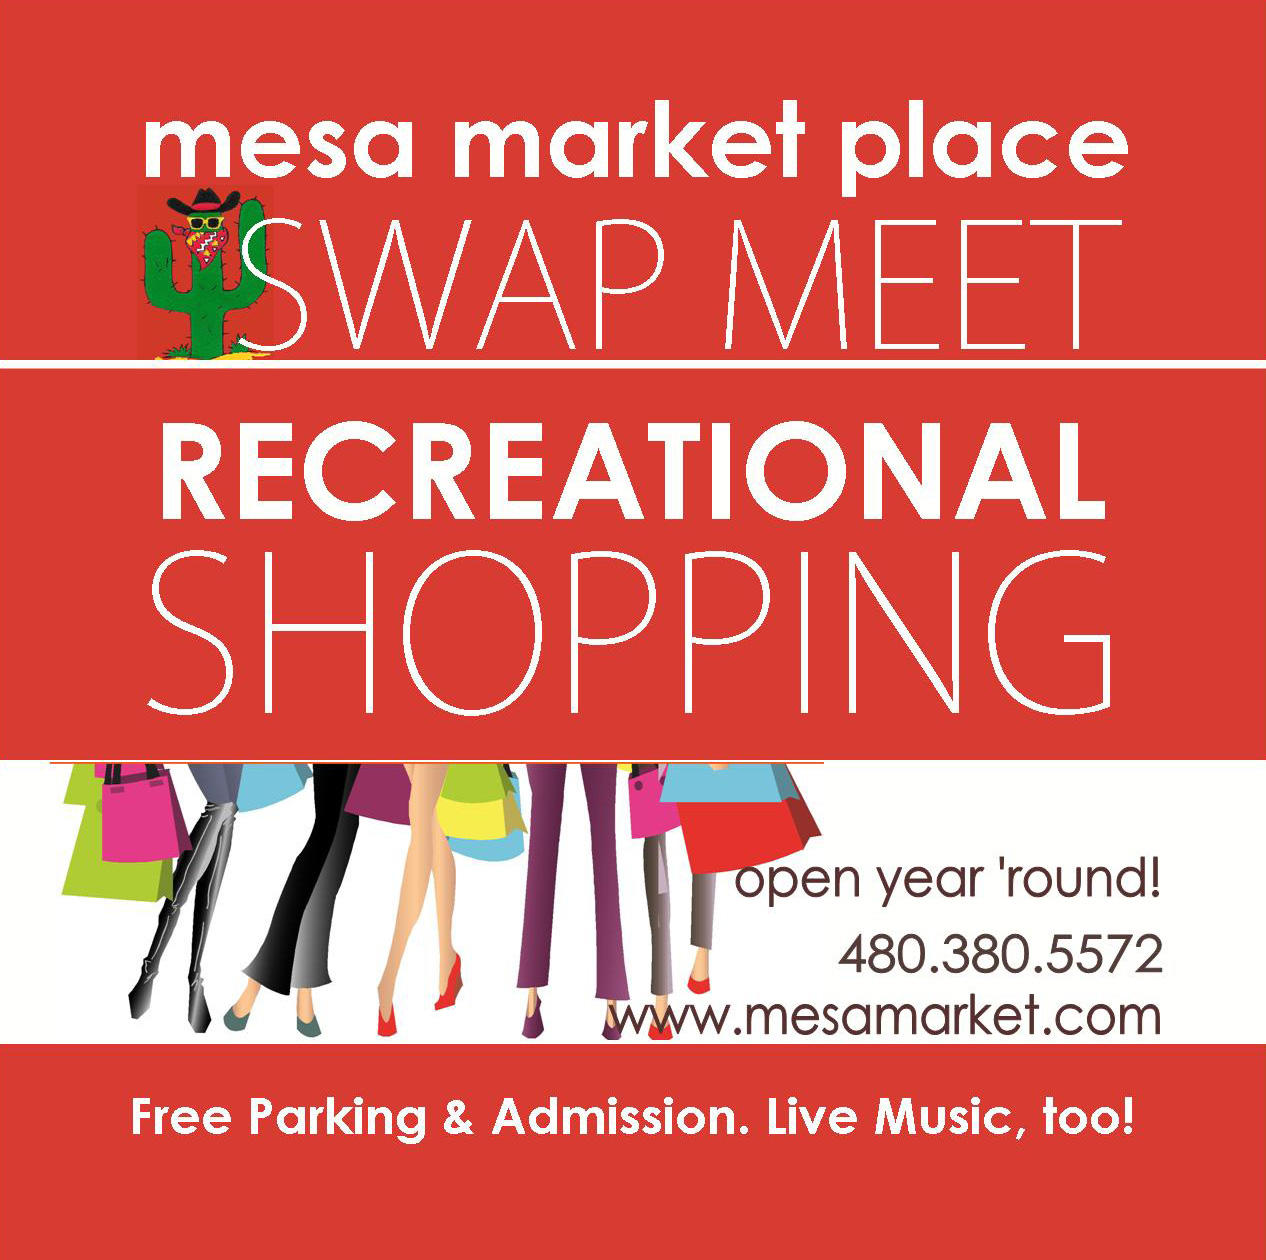 Costa mesa swap meet coupon 2018